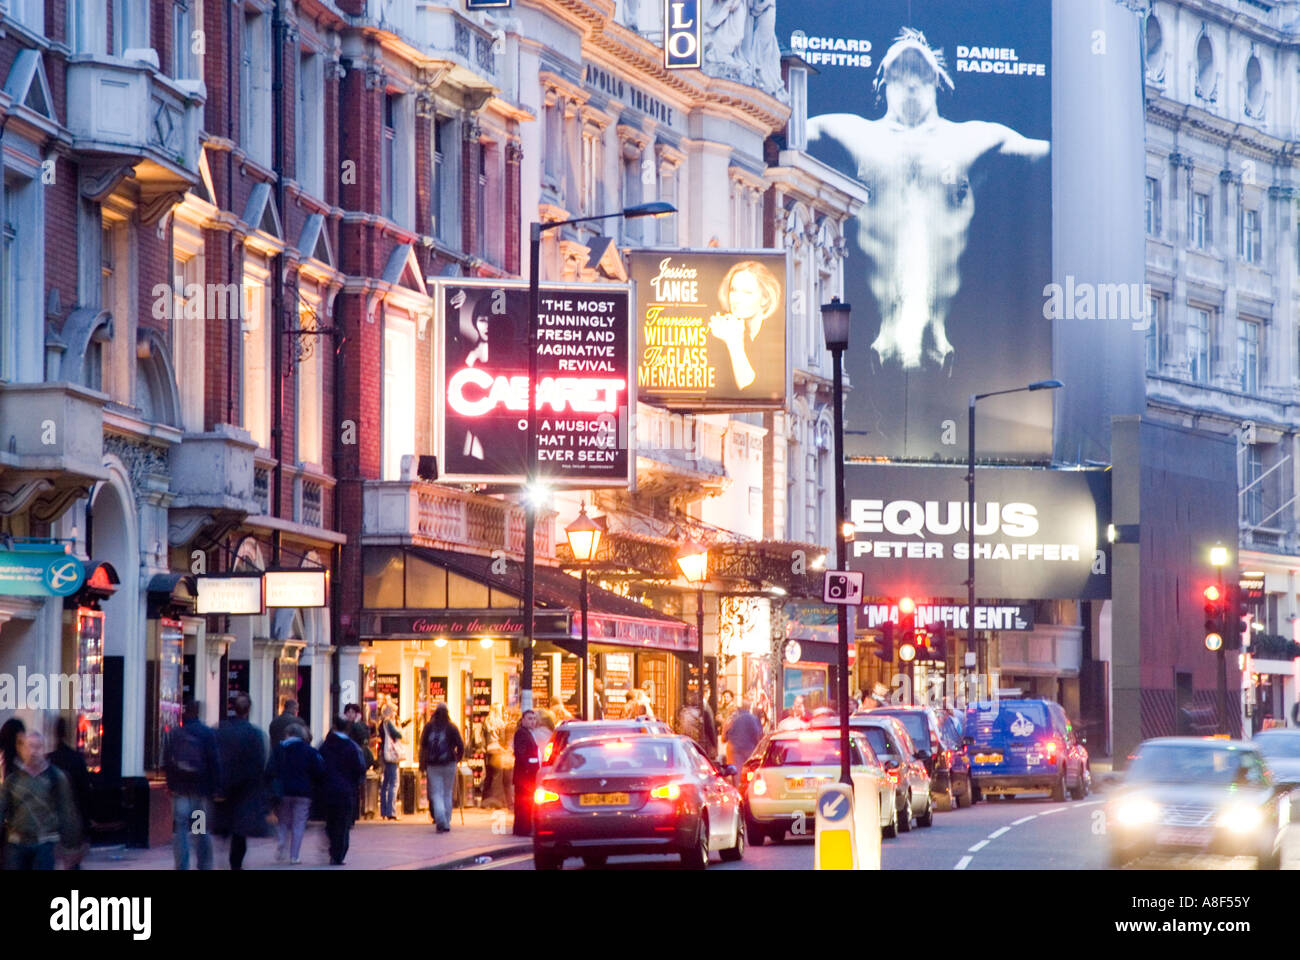 West End theatres on Shaftesbury Avenue at night London England UK - Stock Image